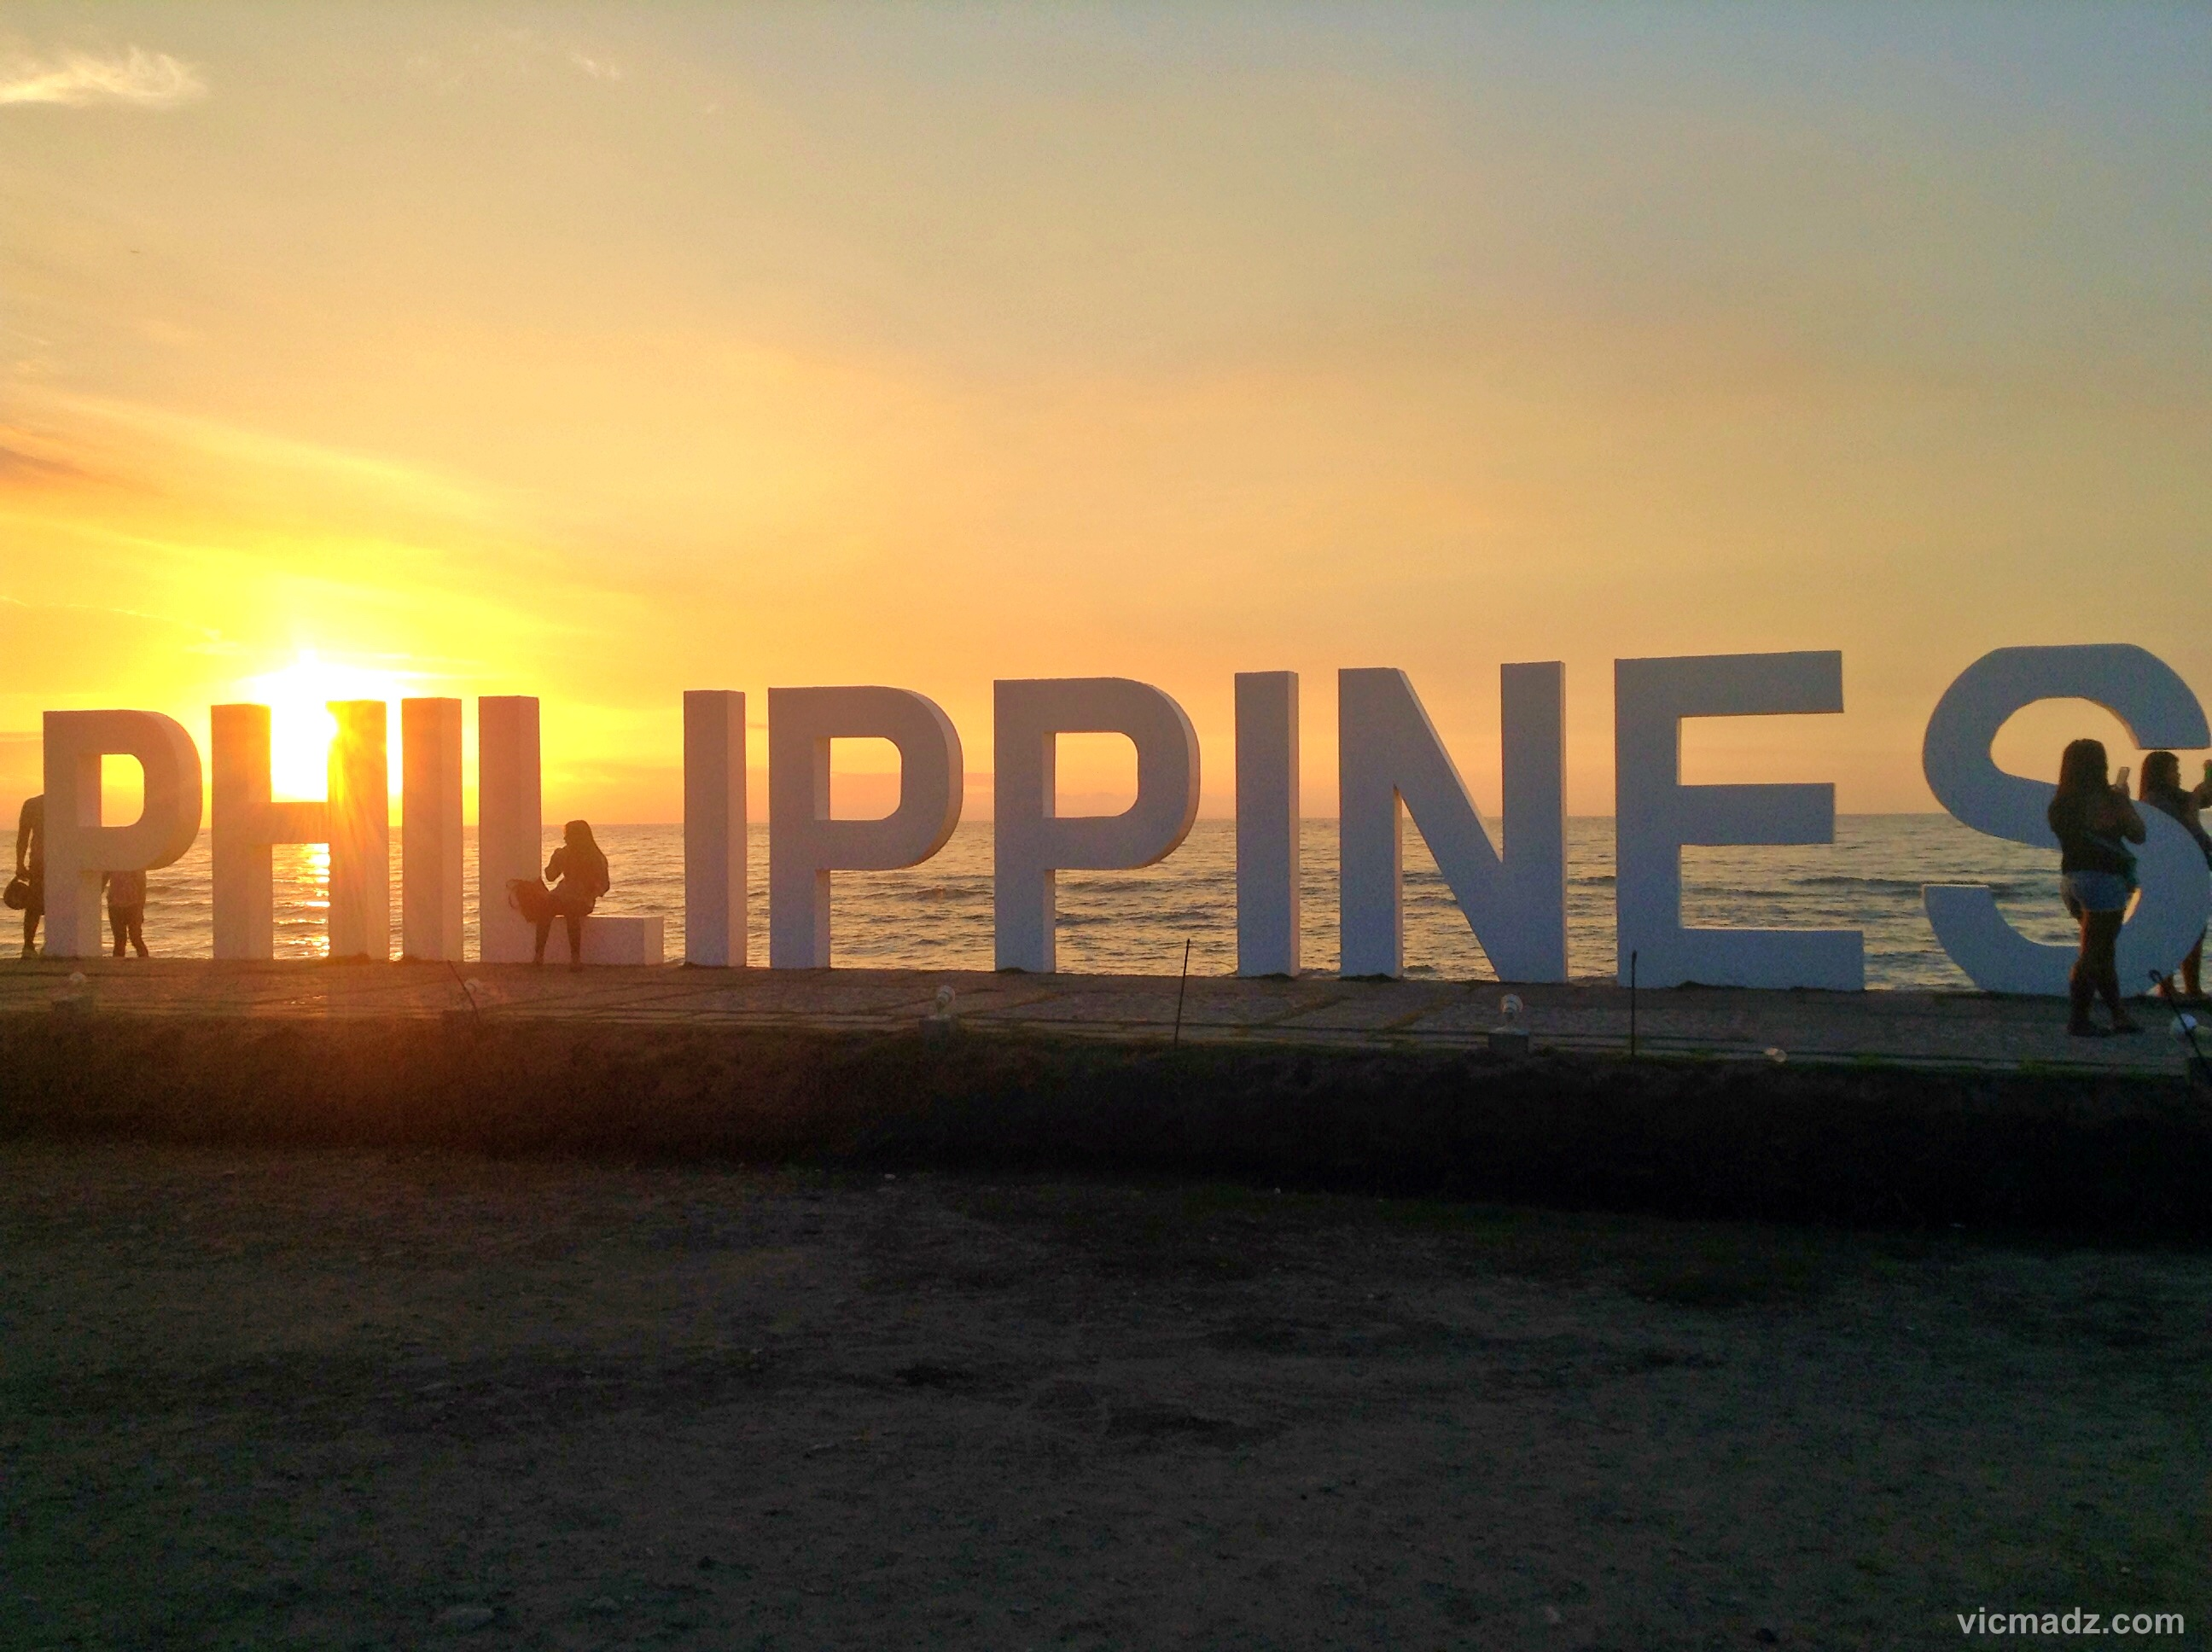 At the huge Philippines signage at Paseo de Santiago, Iligan City.